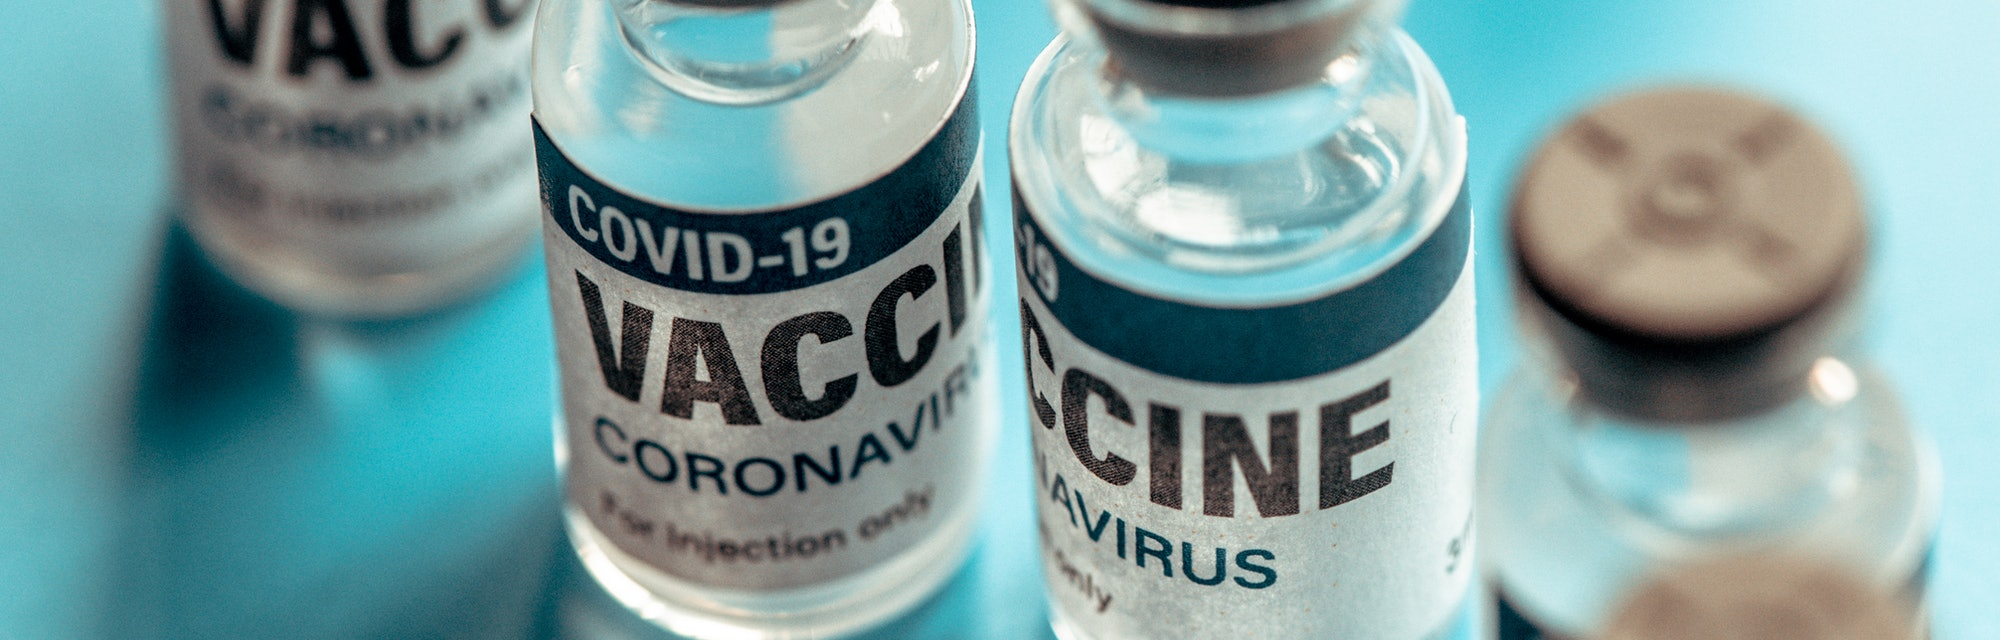 Can the COVID-19 vaccine cause an allergic reaction?